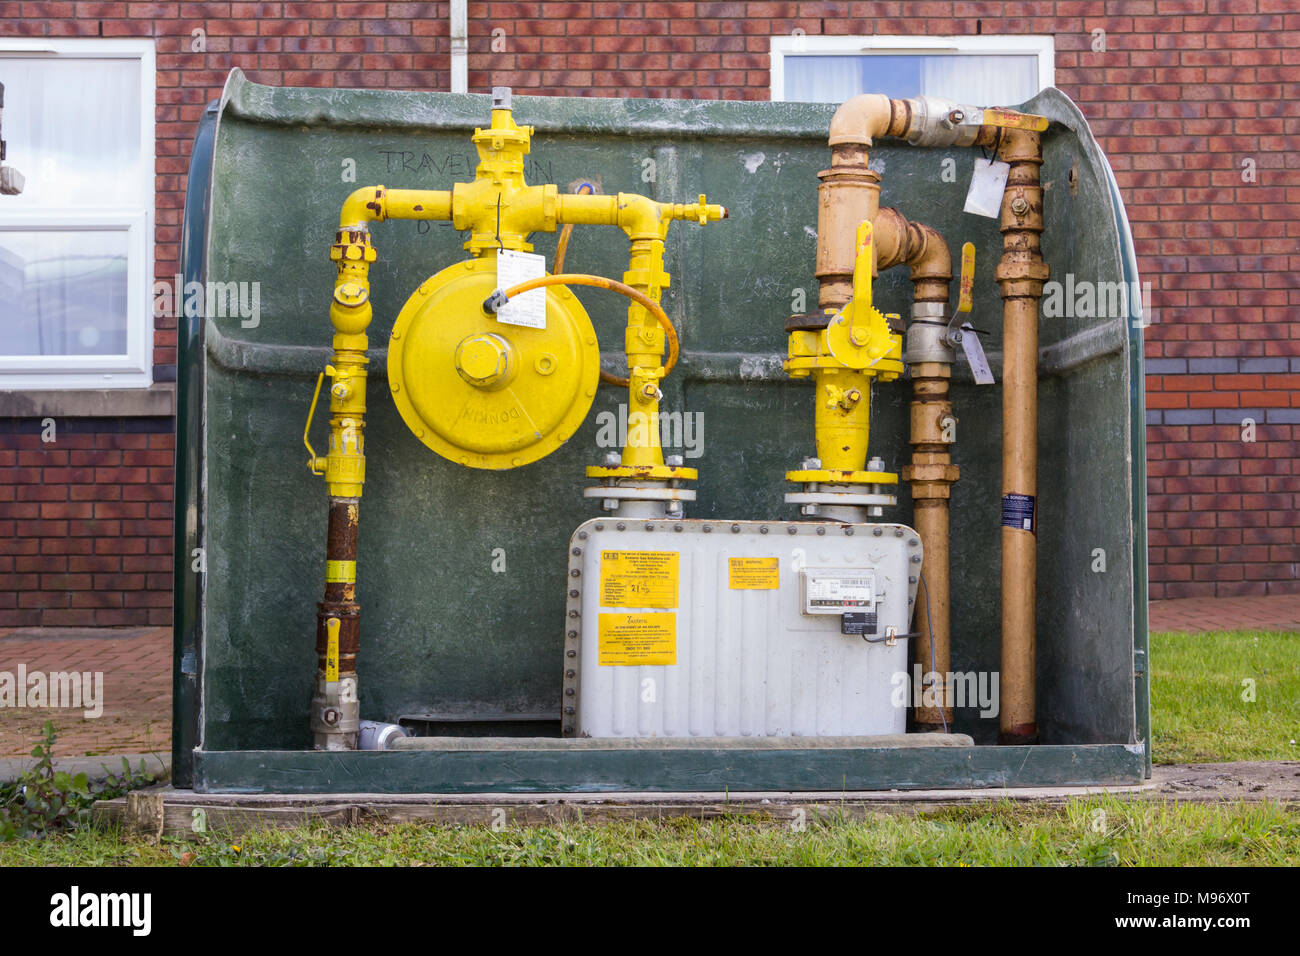 Commercial gas meter, piping and valves outside a hotel building in the UK. - Stock Image